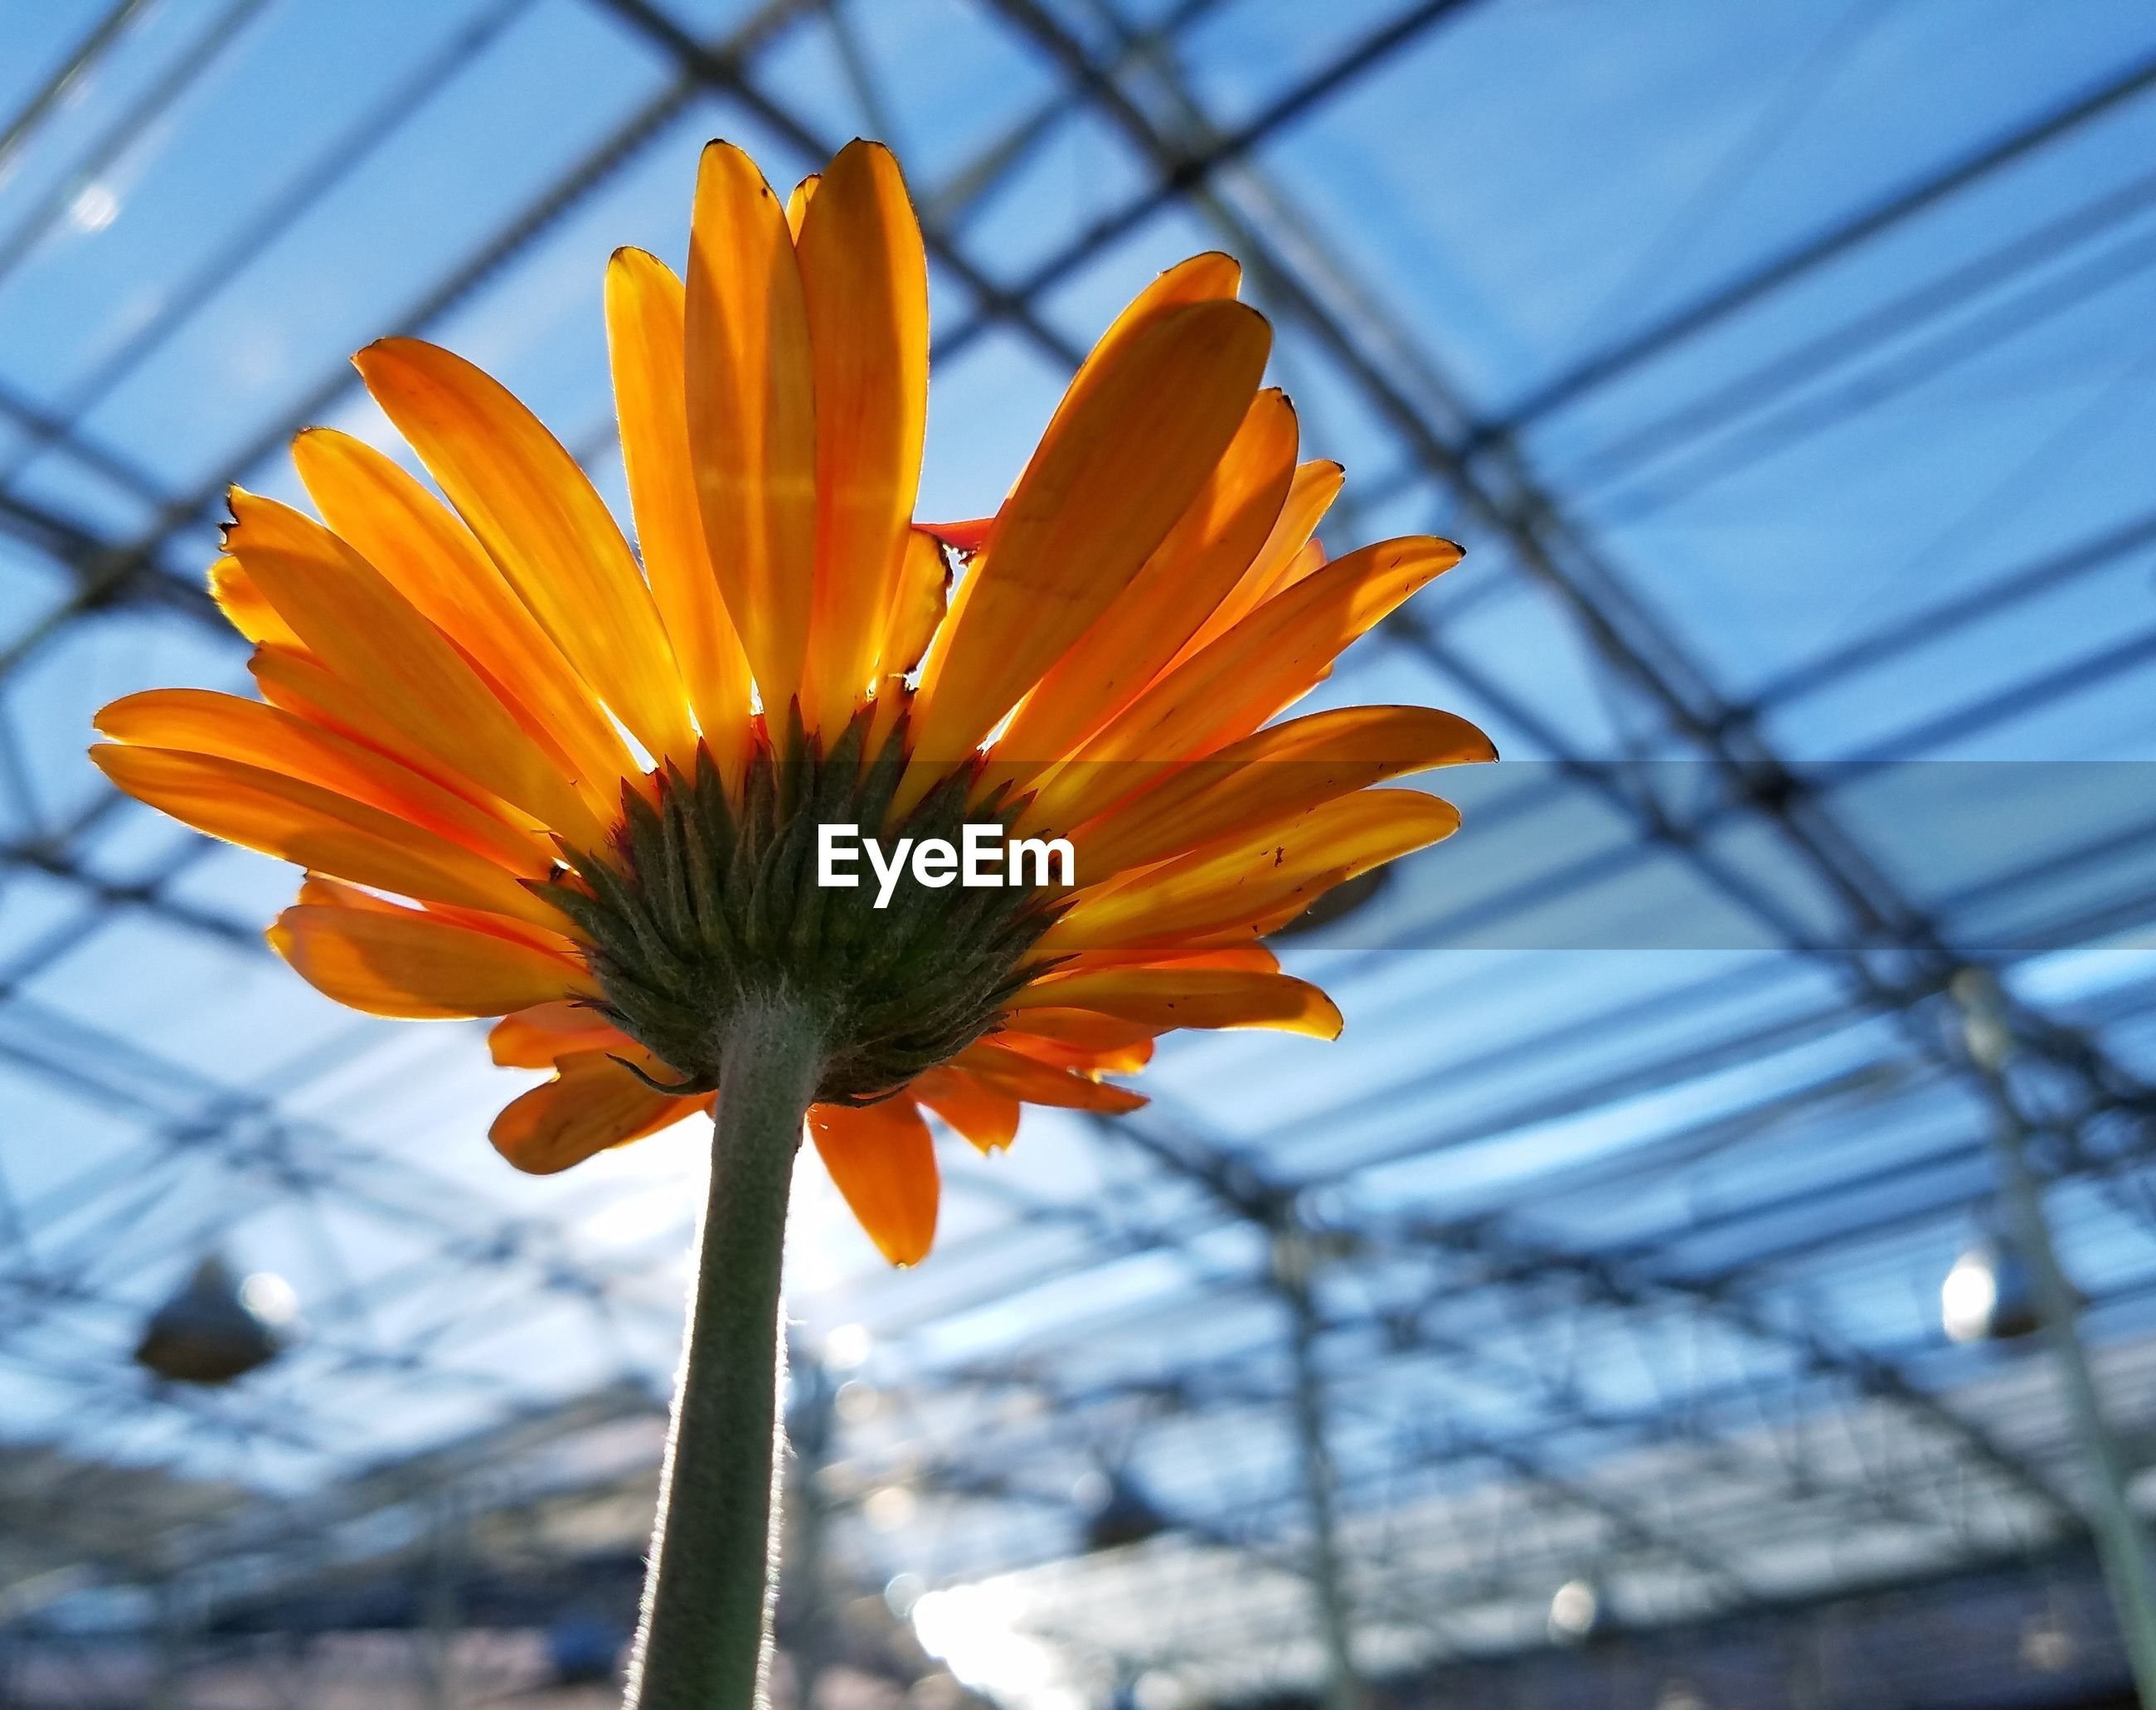 LOW ANGLE VIEW OF YELLOW FLOWER AGAINST SKY